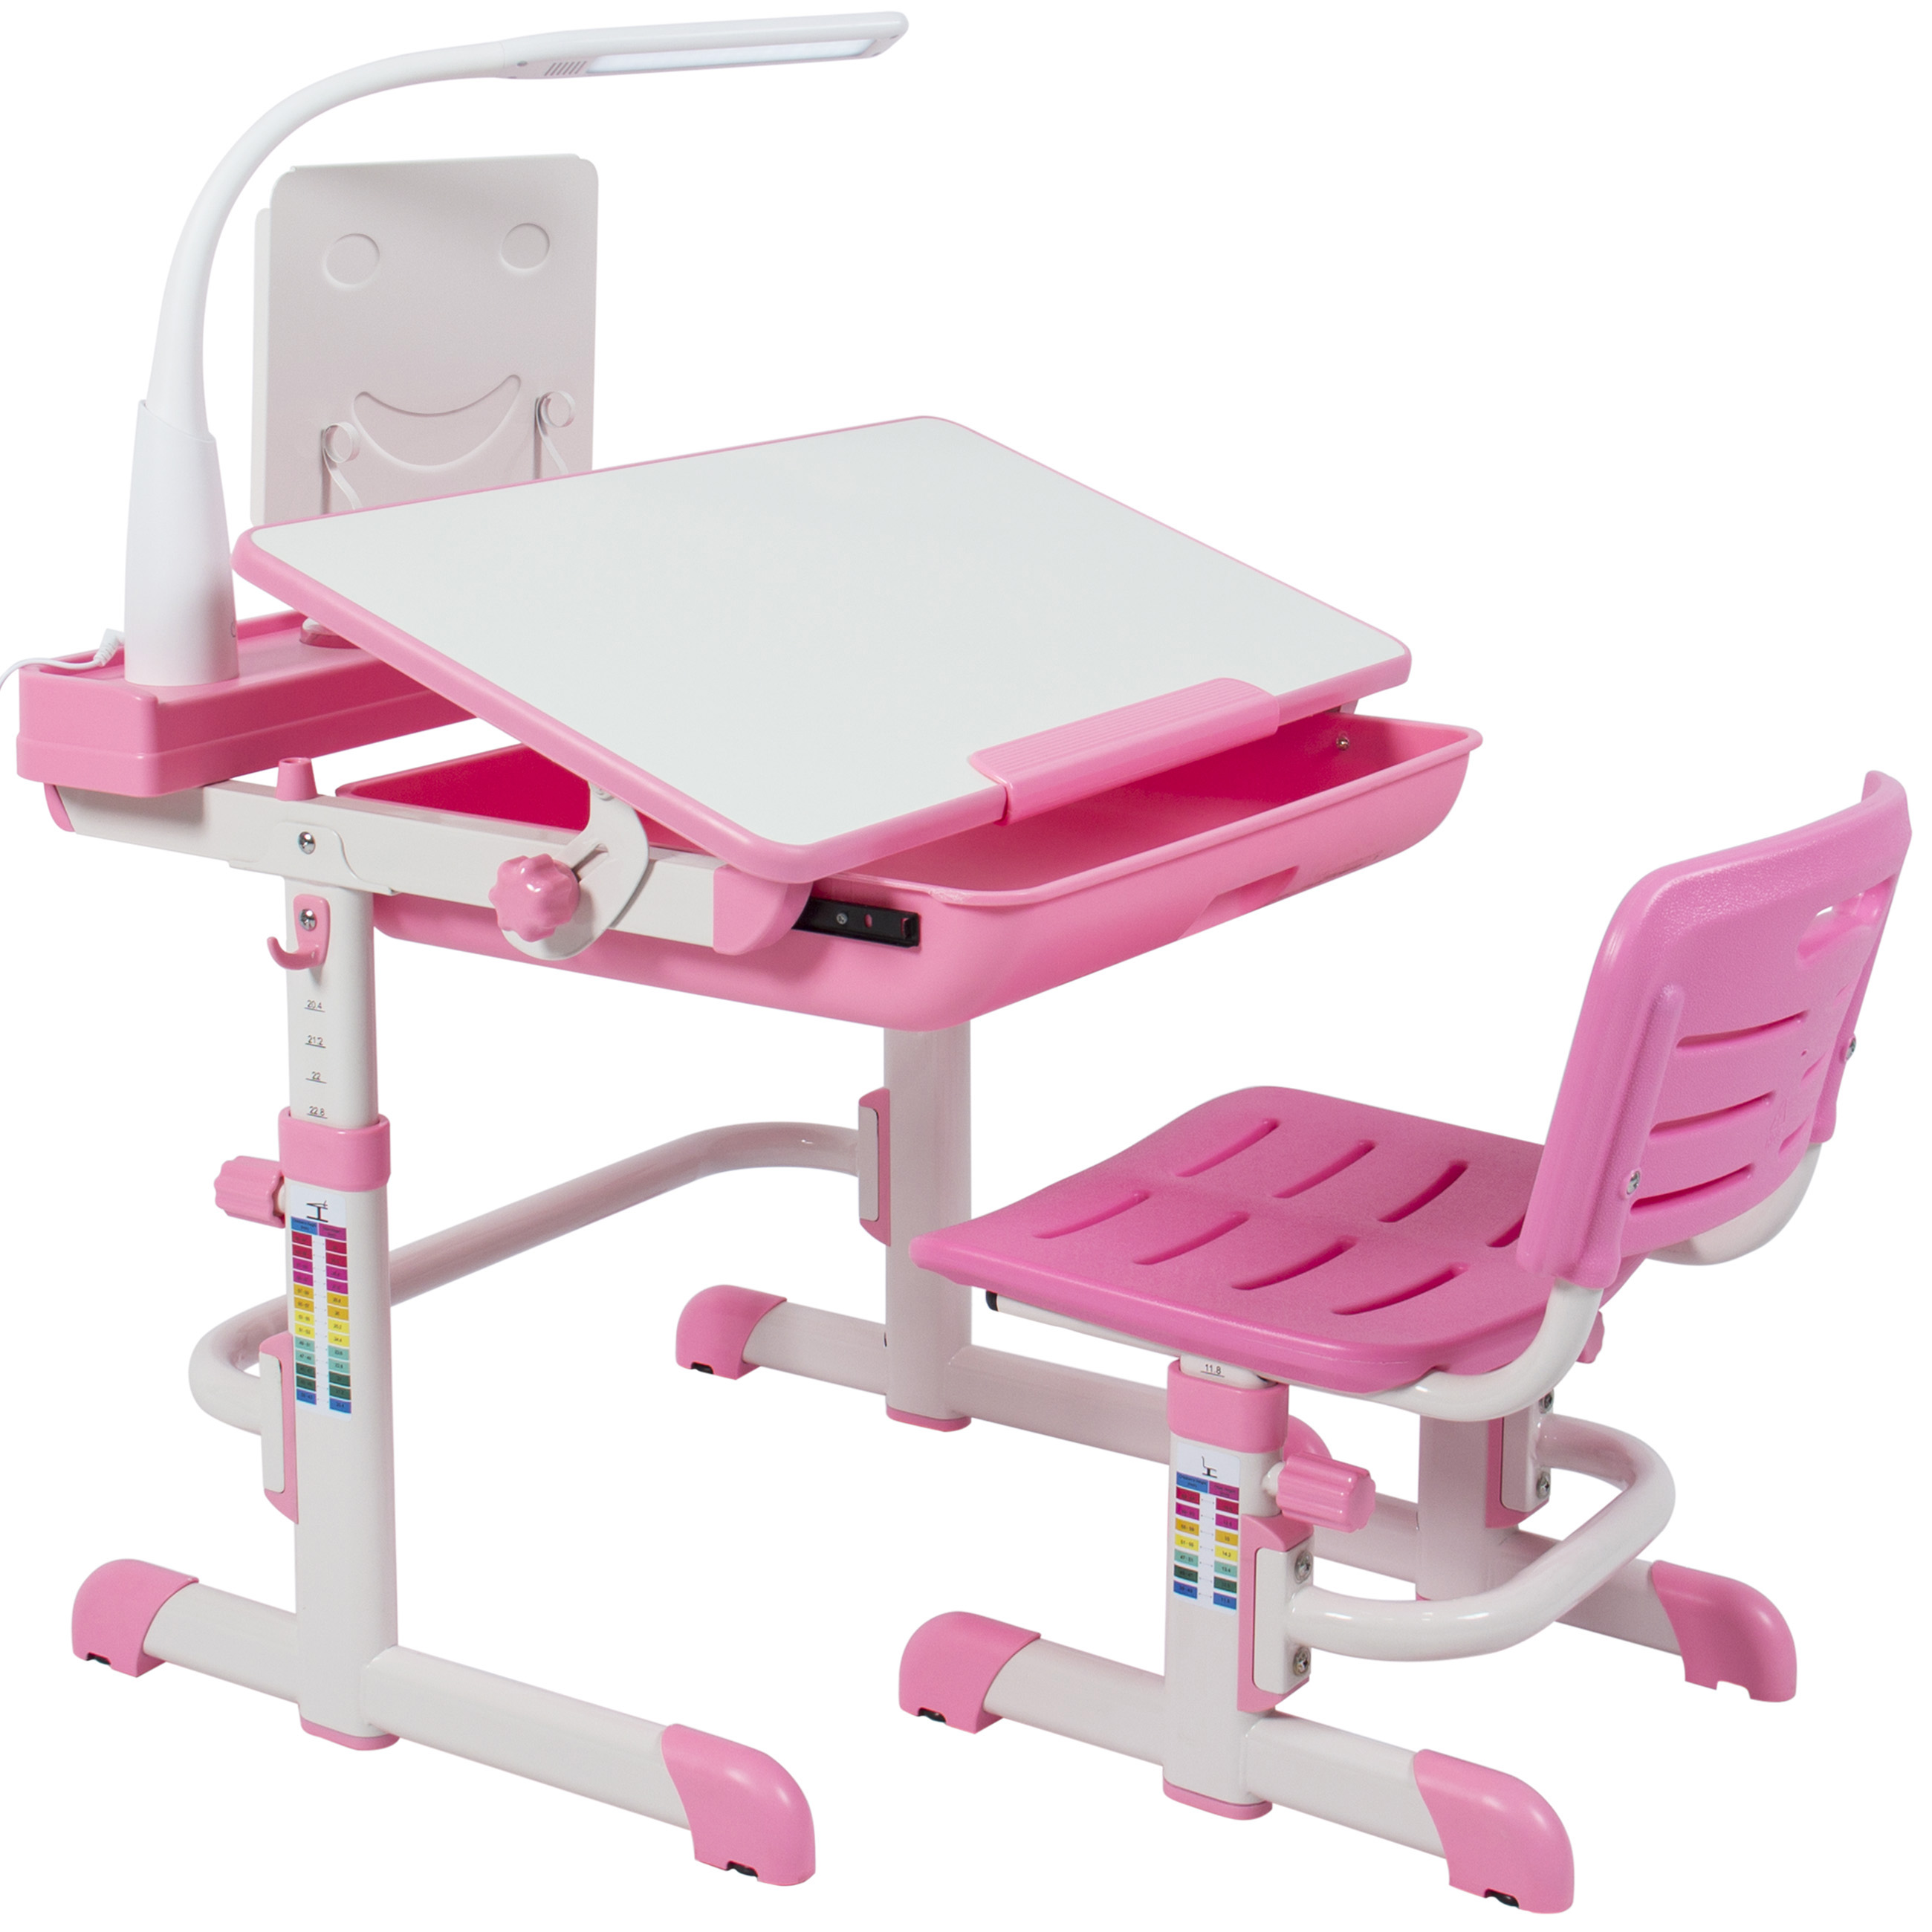 Best Choice Products Height Adjustable Childrens Desk and Chair Set